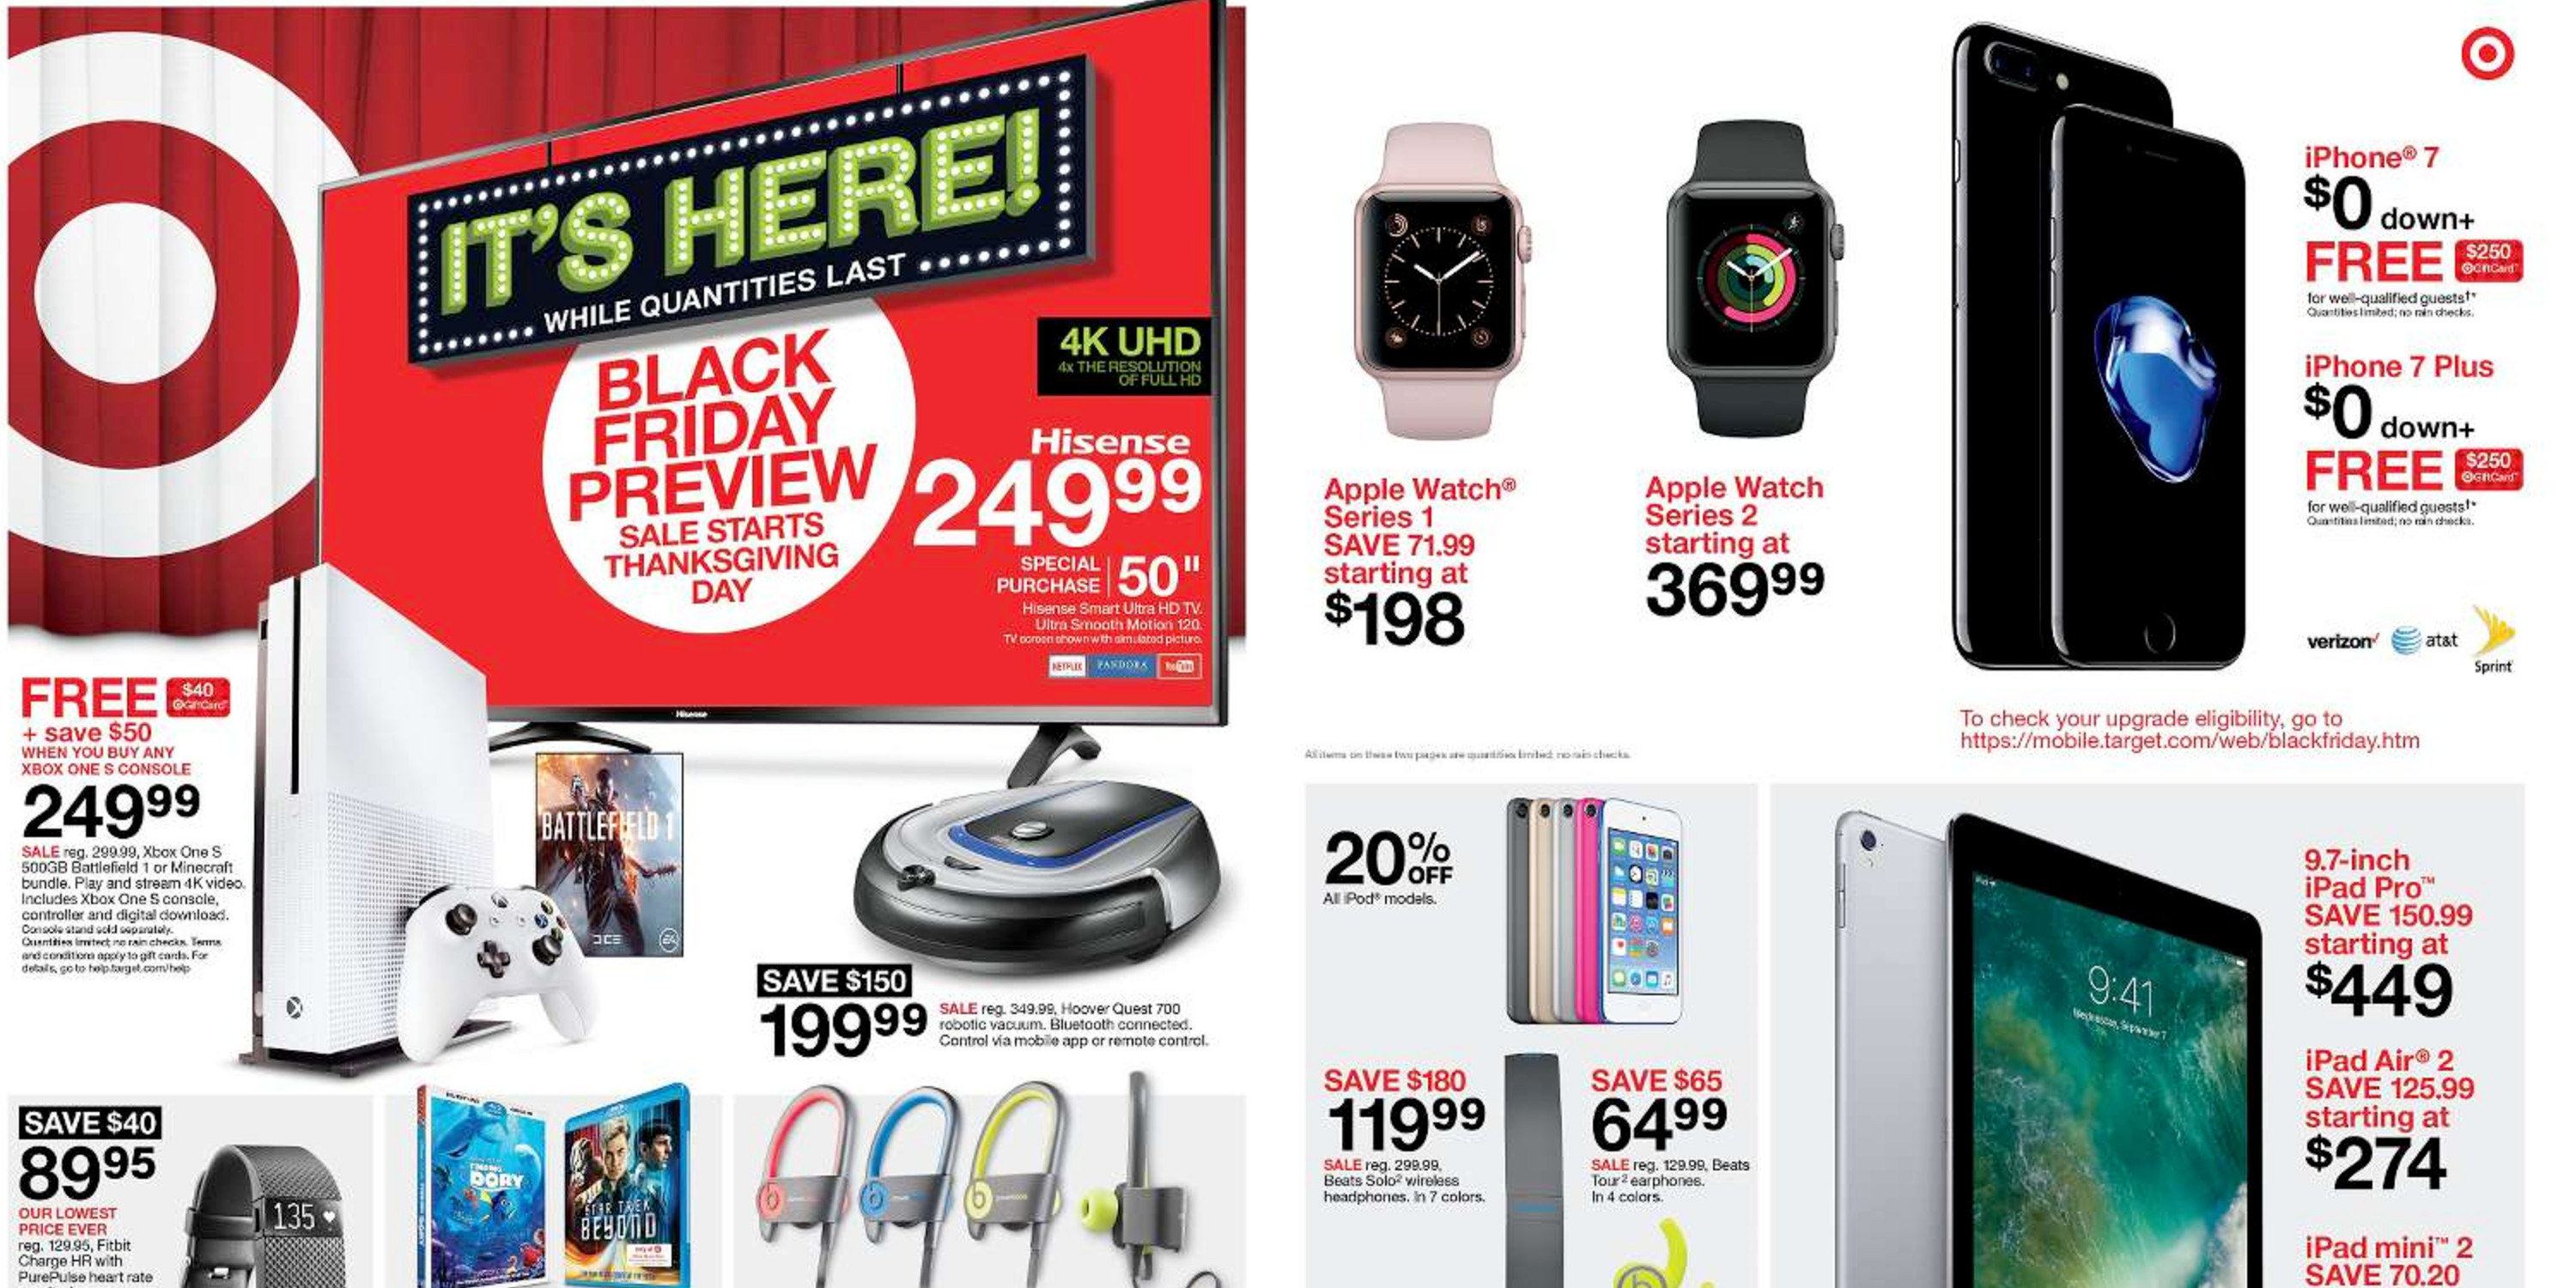 target-black-friday-2016-sale-15